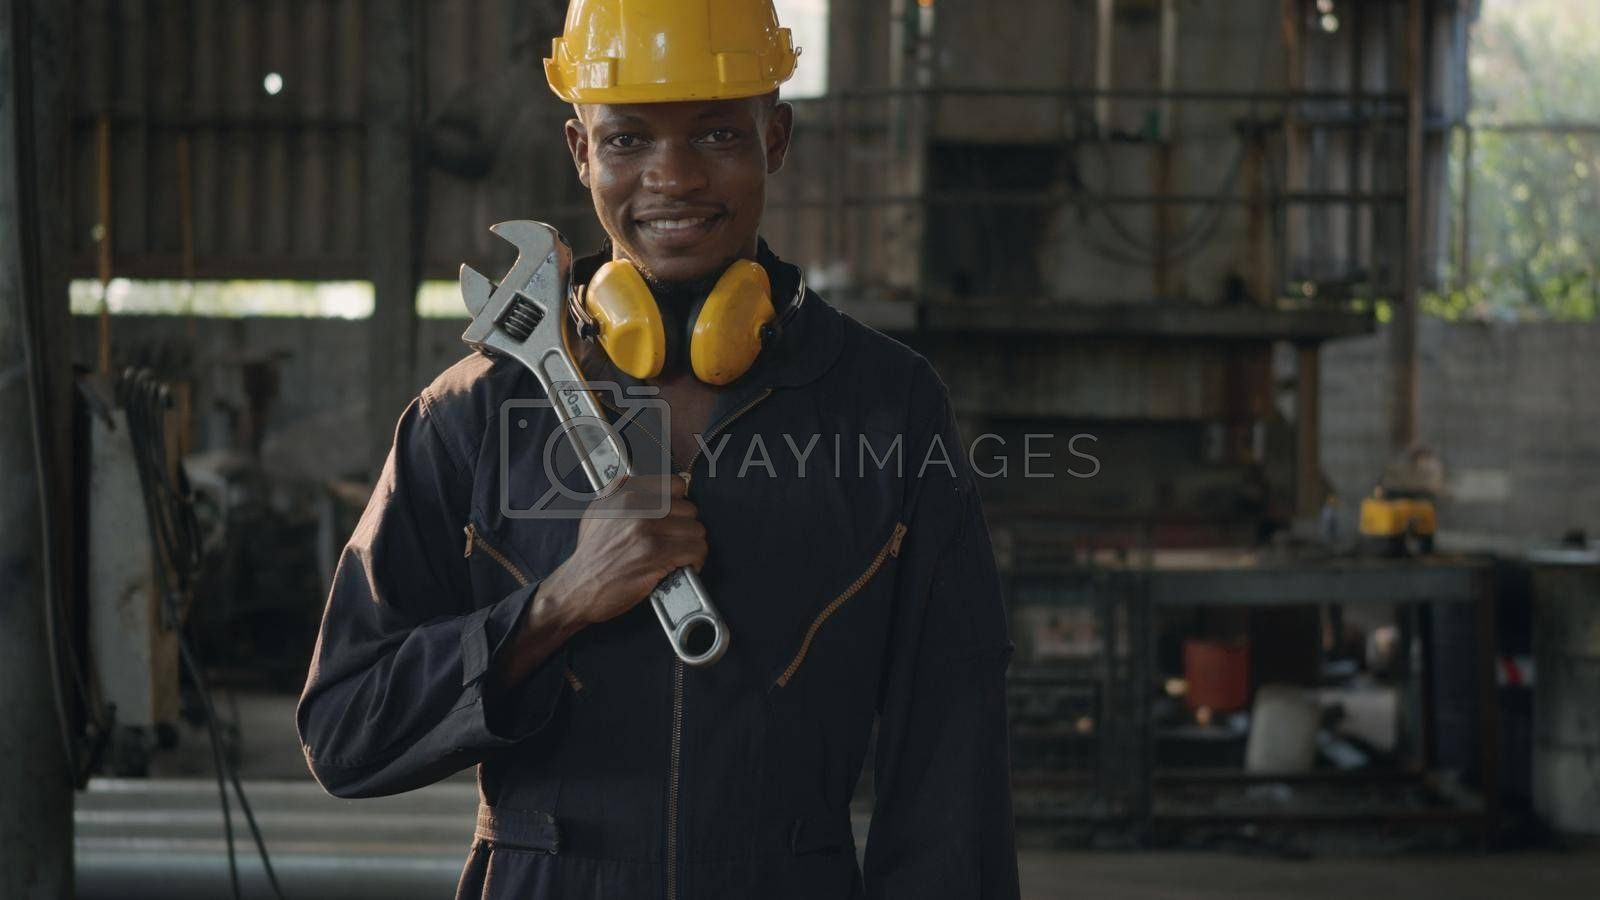 Portrait American industrial black young worker man smiling with helmet and ear protection in front machine, Engineer standing holding wrench on his shoulder at work in industry factory.